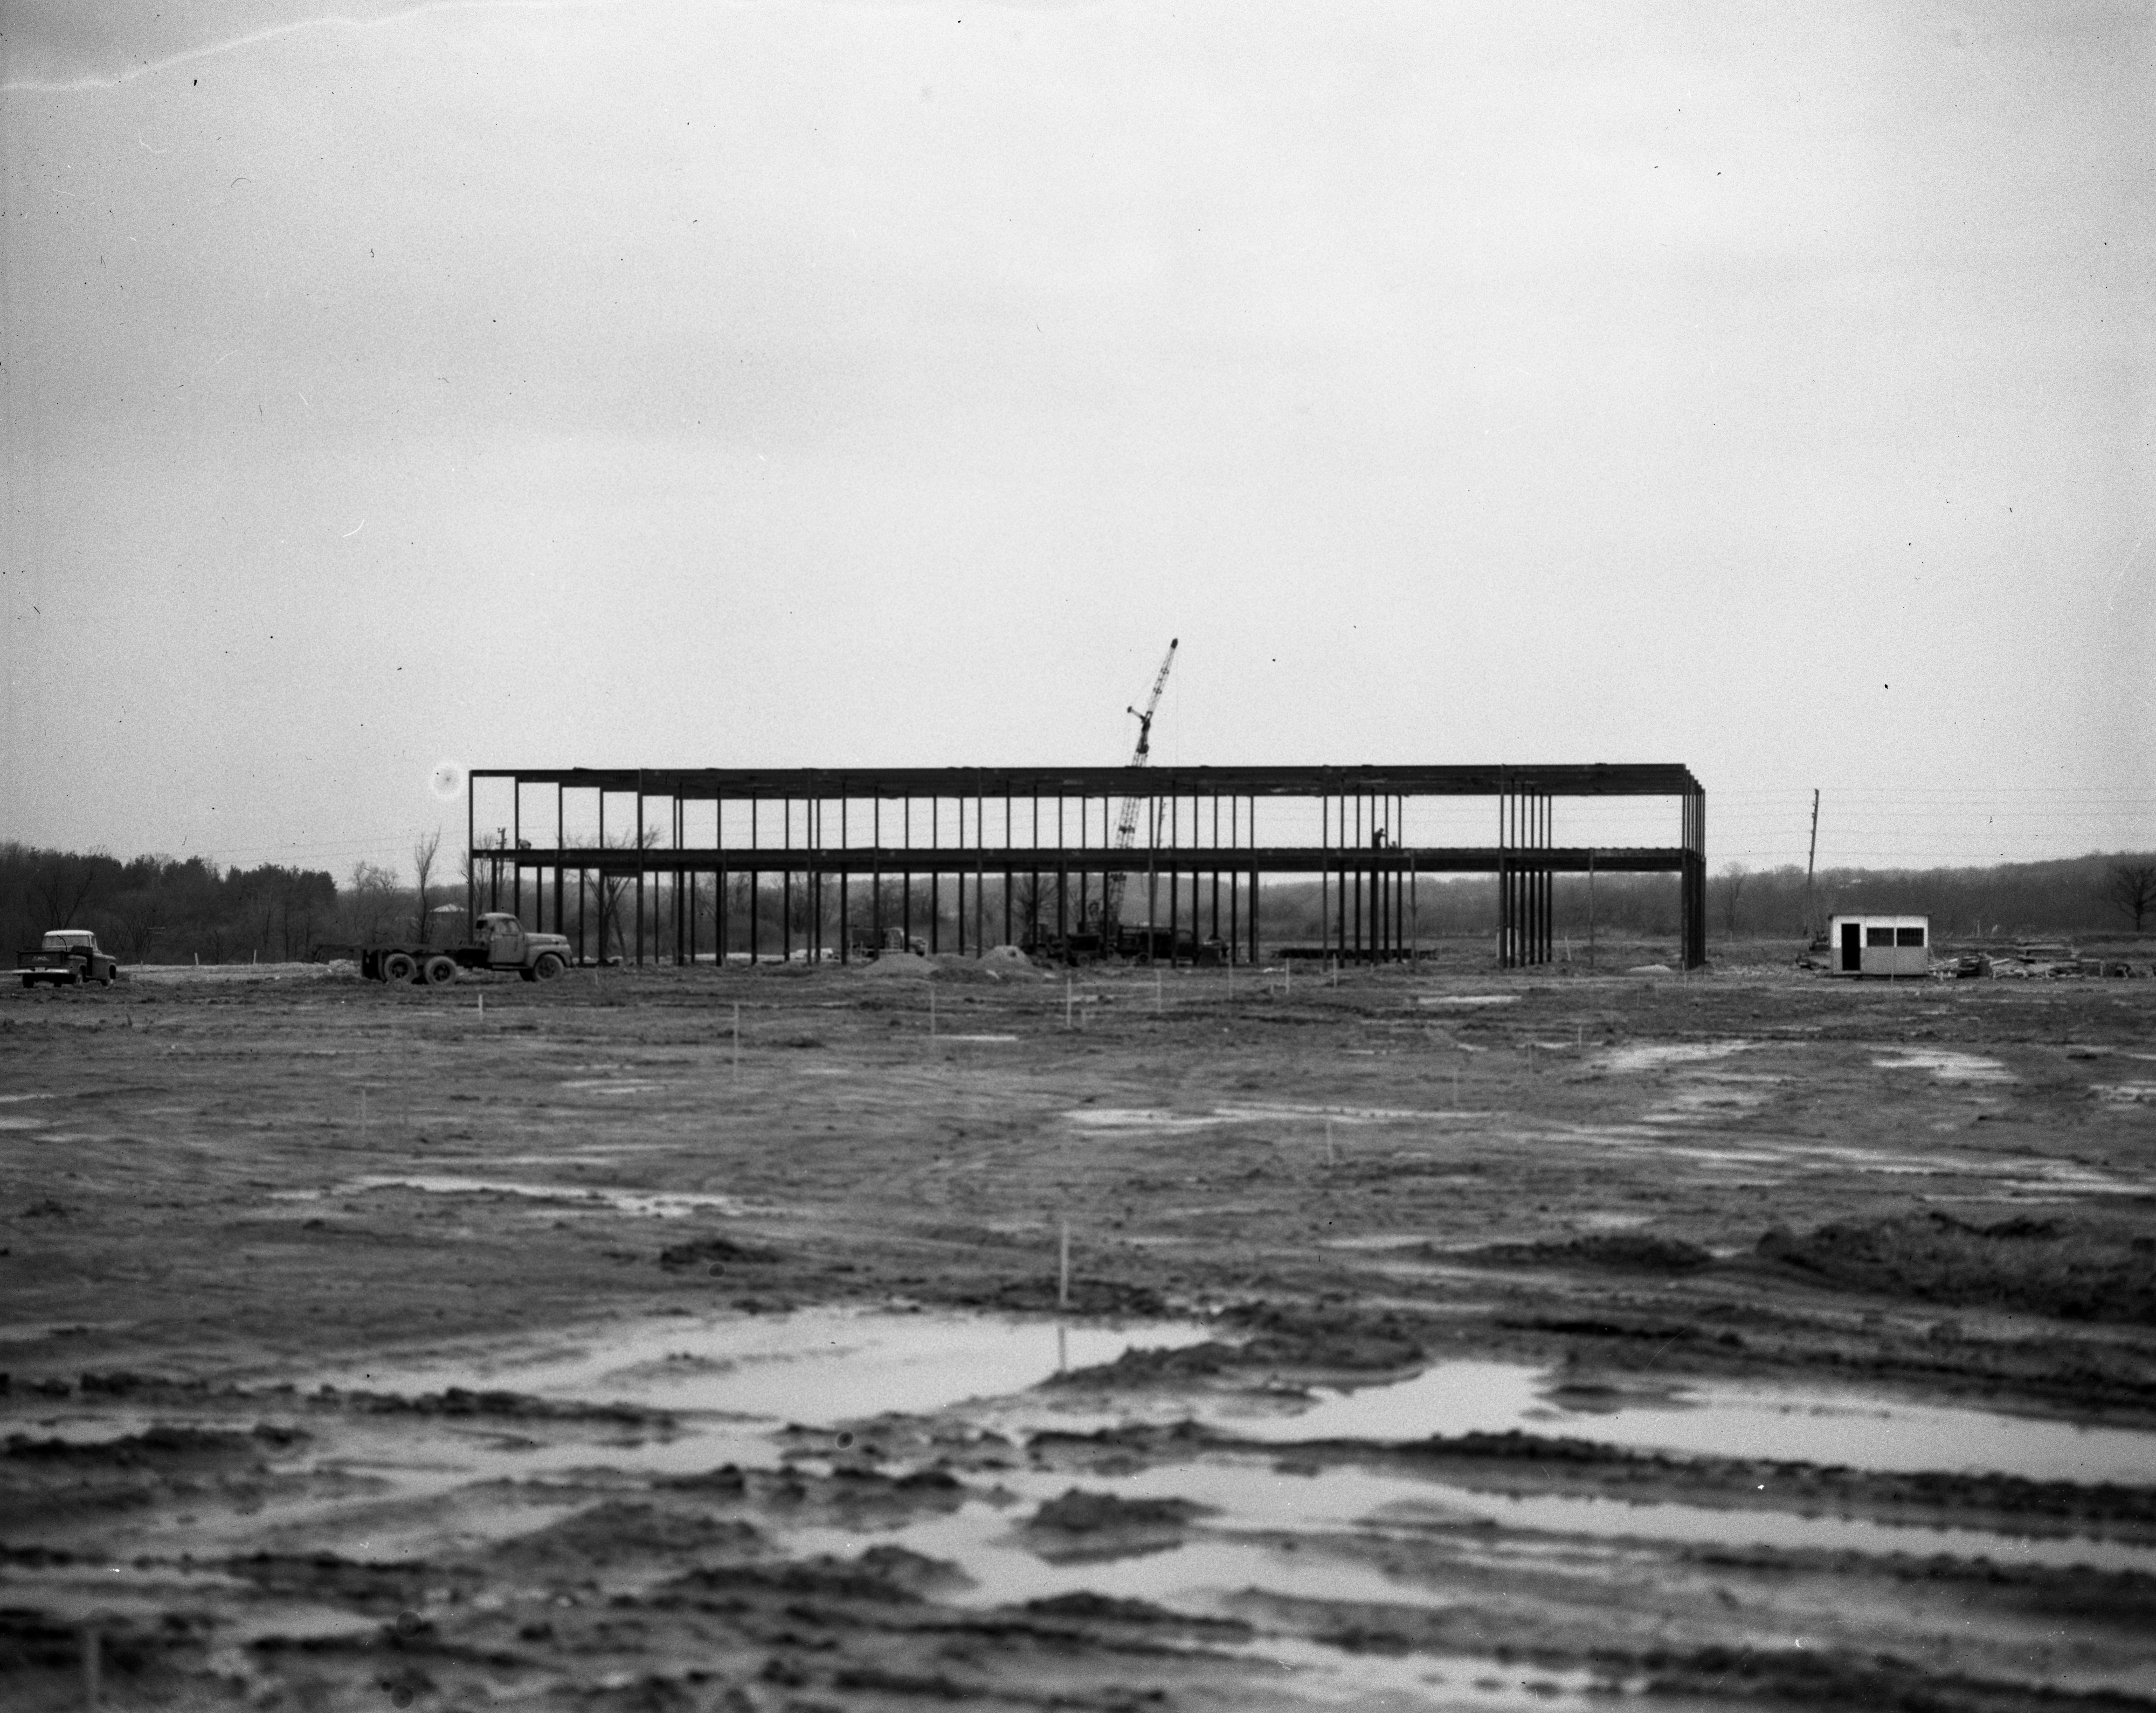 Steel Work Construction at Arborland Shopping Center, May 1961 image